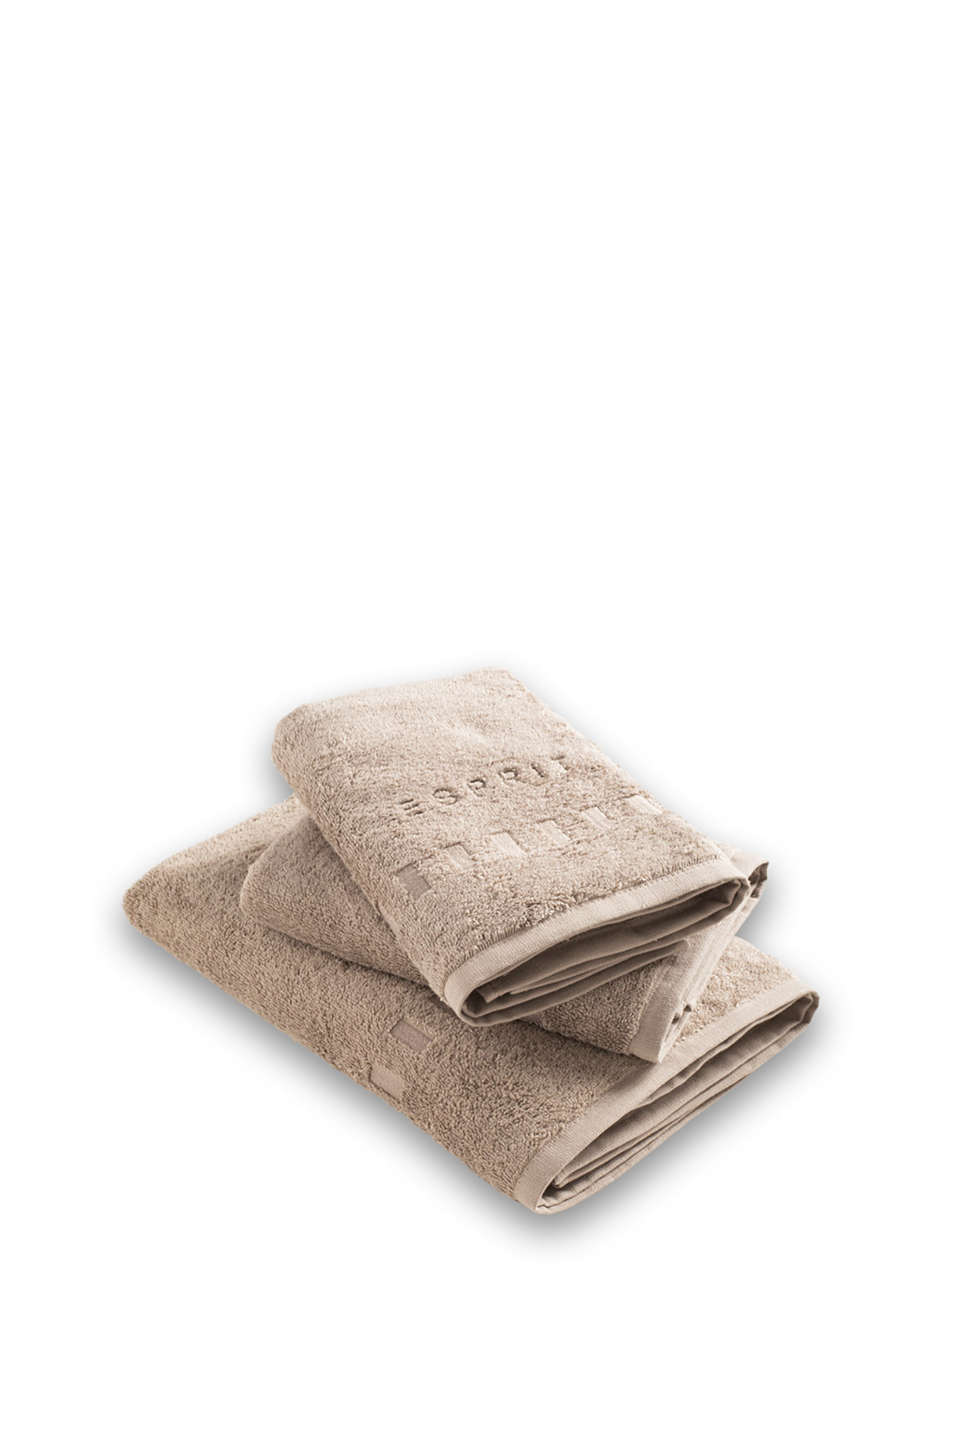 Esprit - Value set: 2 hand towels + 1 bath towel